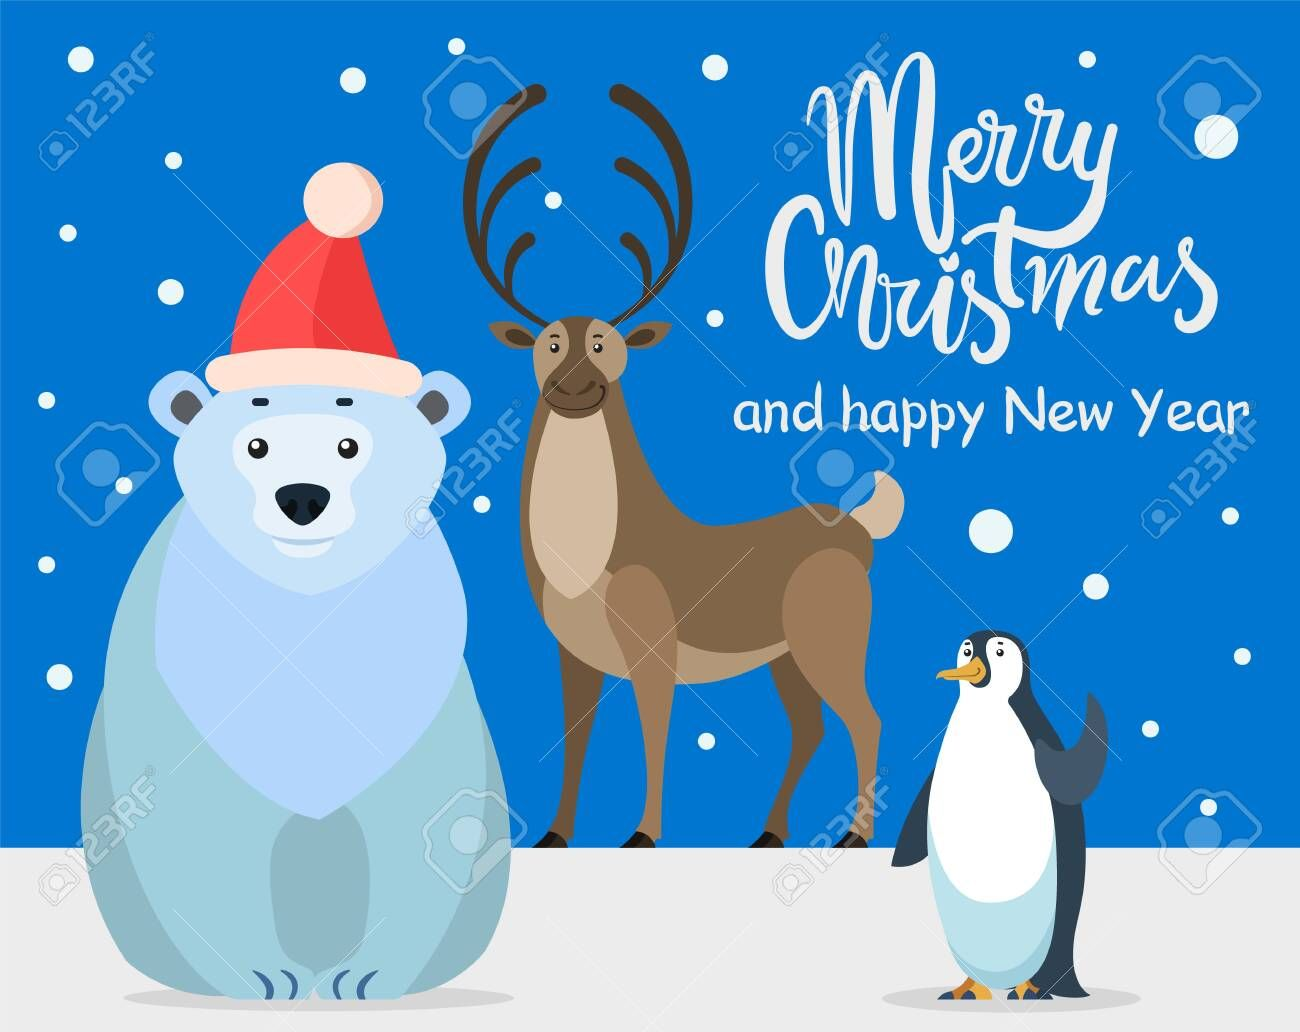 Polar white bear, emperor penguin and north reindeer, cartoon characters. Merry christmas greeting card. Preparing for winter holidays. Illustration , #sponsored, #north, #penguin, #cartoon, #reindeer, #white